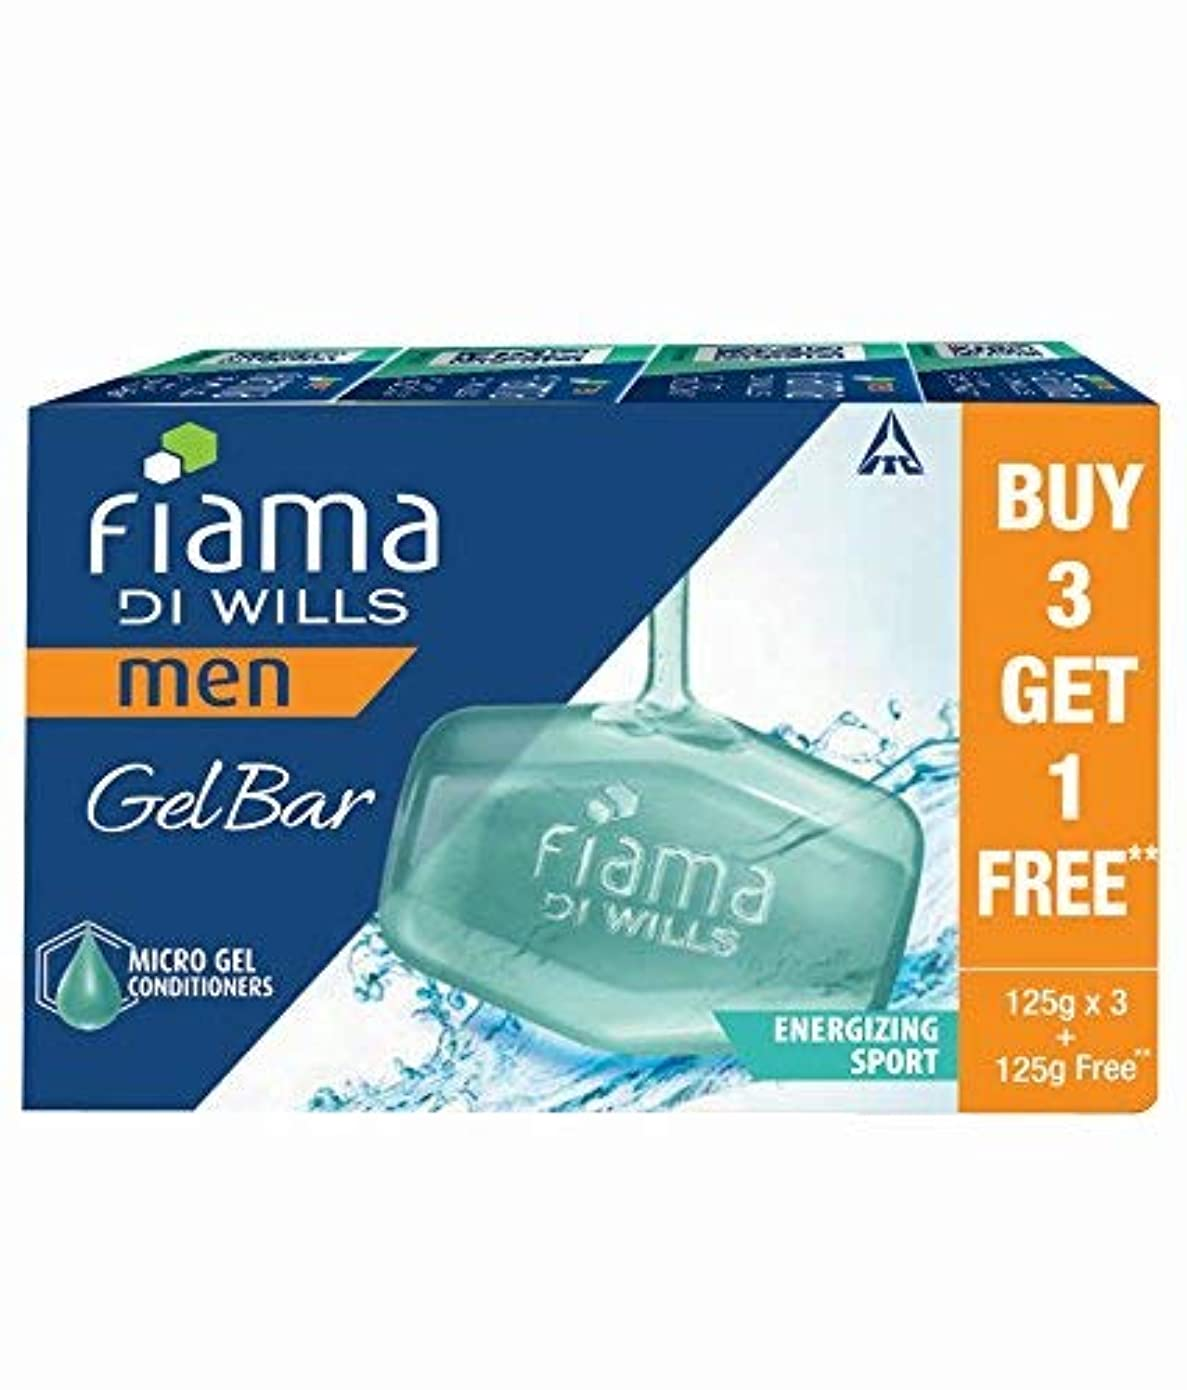 ピンポイント公爵うまれたFiama Di Wills Men Energizing Sport Gel Bar, 125g (Buy 3 Get 1 Free)